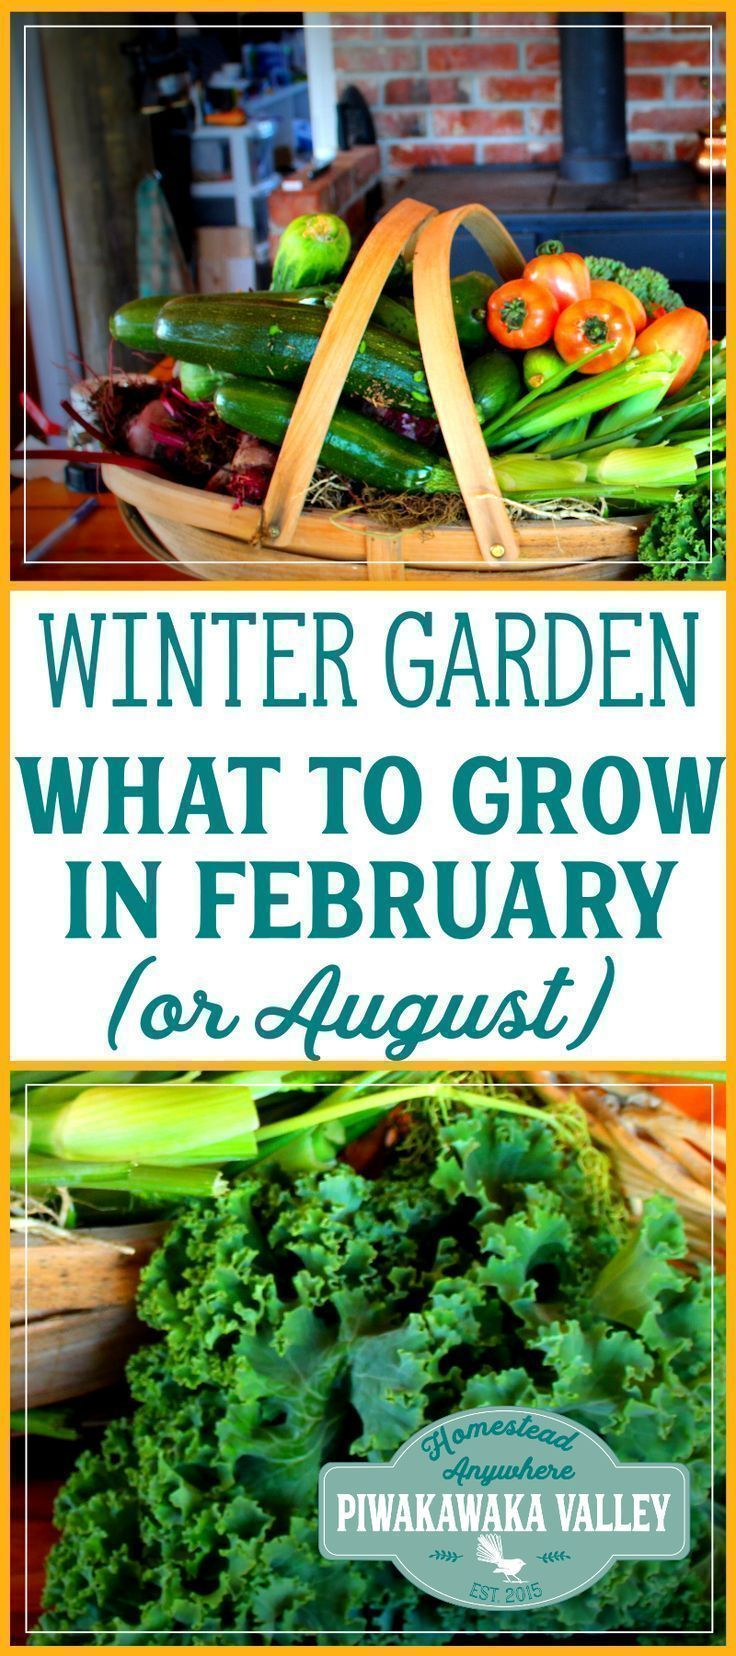 Growing a winter vegetable garden? Here is what to plant in February (or August in southern hemisphere). Garden, gardening, permaculture, vegetable gardening, Veggie gardens, permaculture design, mulching, mulch, self sufficient, Potager garden Landscaping, Backyard ideas, Permaculture, Compost, get started, start vegetable garden, tips, skills, frugal, survivalism, homesteading ideas, simple living, self sufficient small farm hacks, urban garden, #gardening #gardens #urbangardeningtips